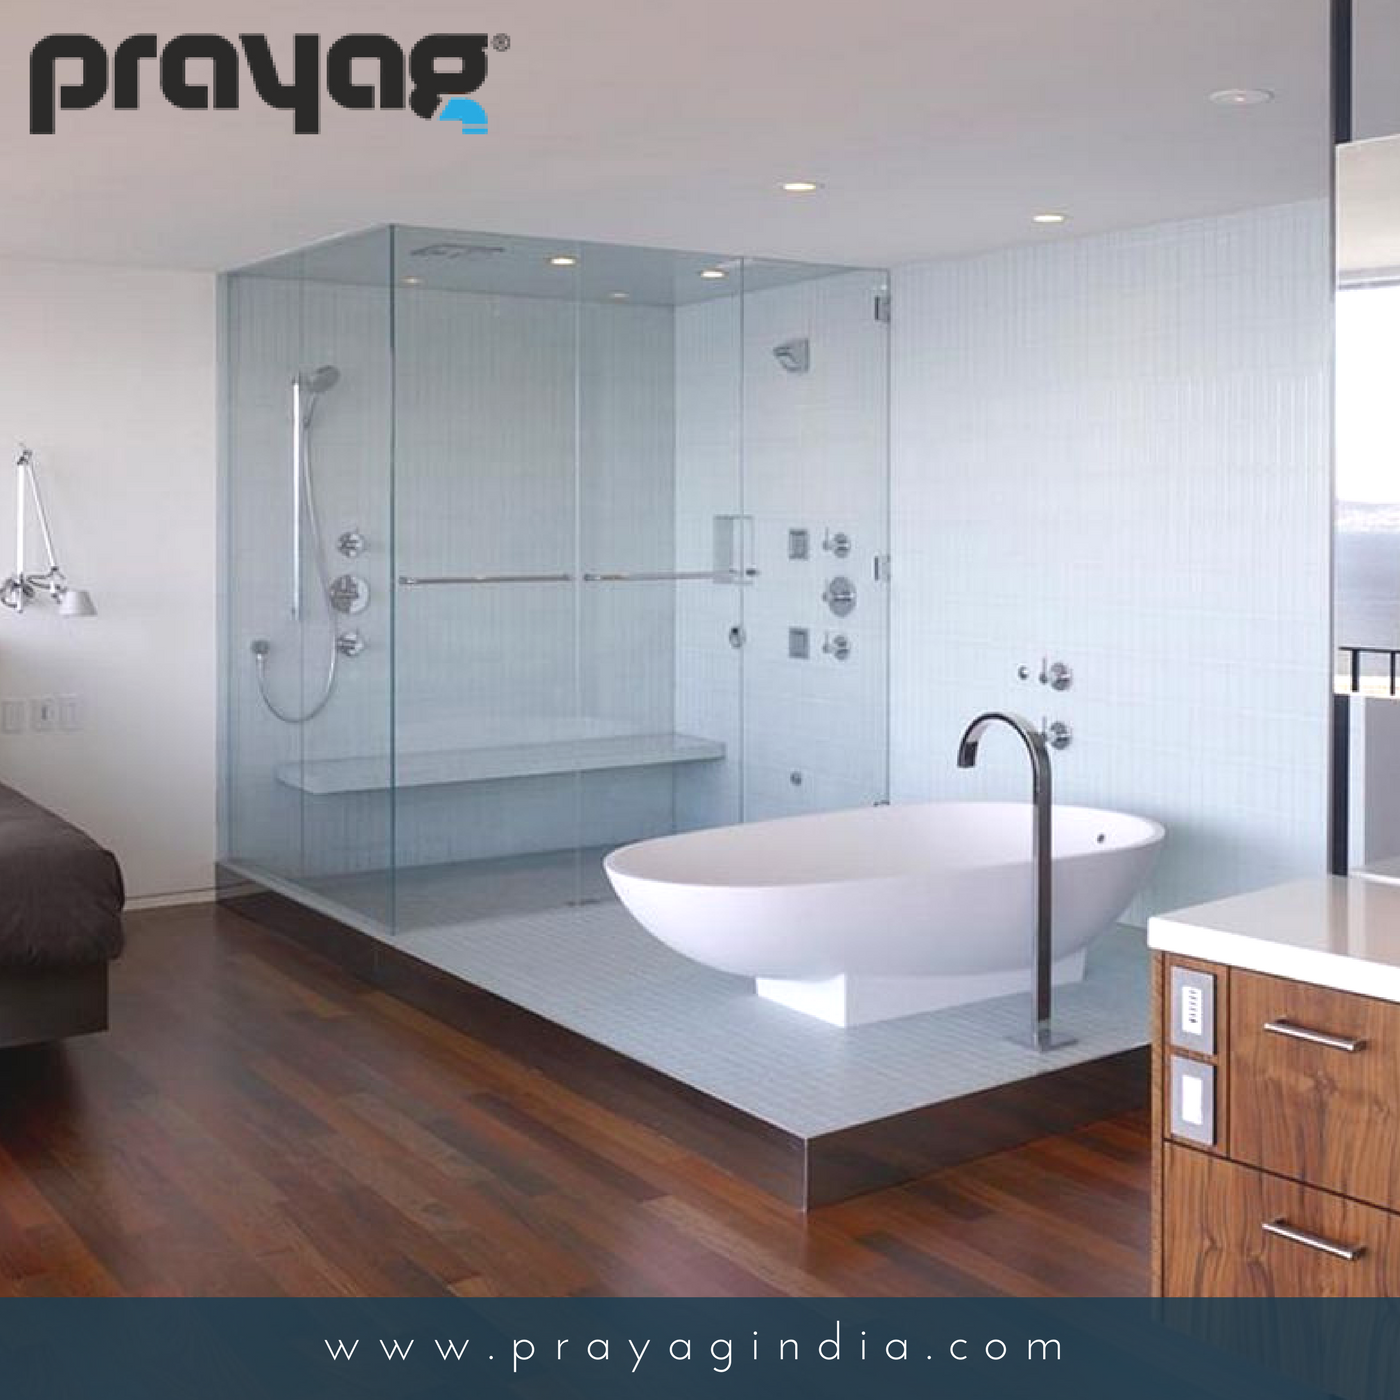 Best Bathroom Designs In India Few Simple Changes Make You Bathroom More Efficient & Even